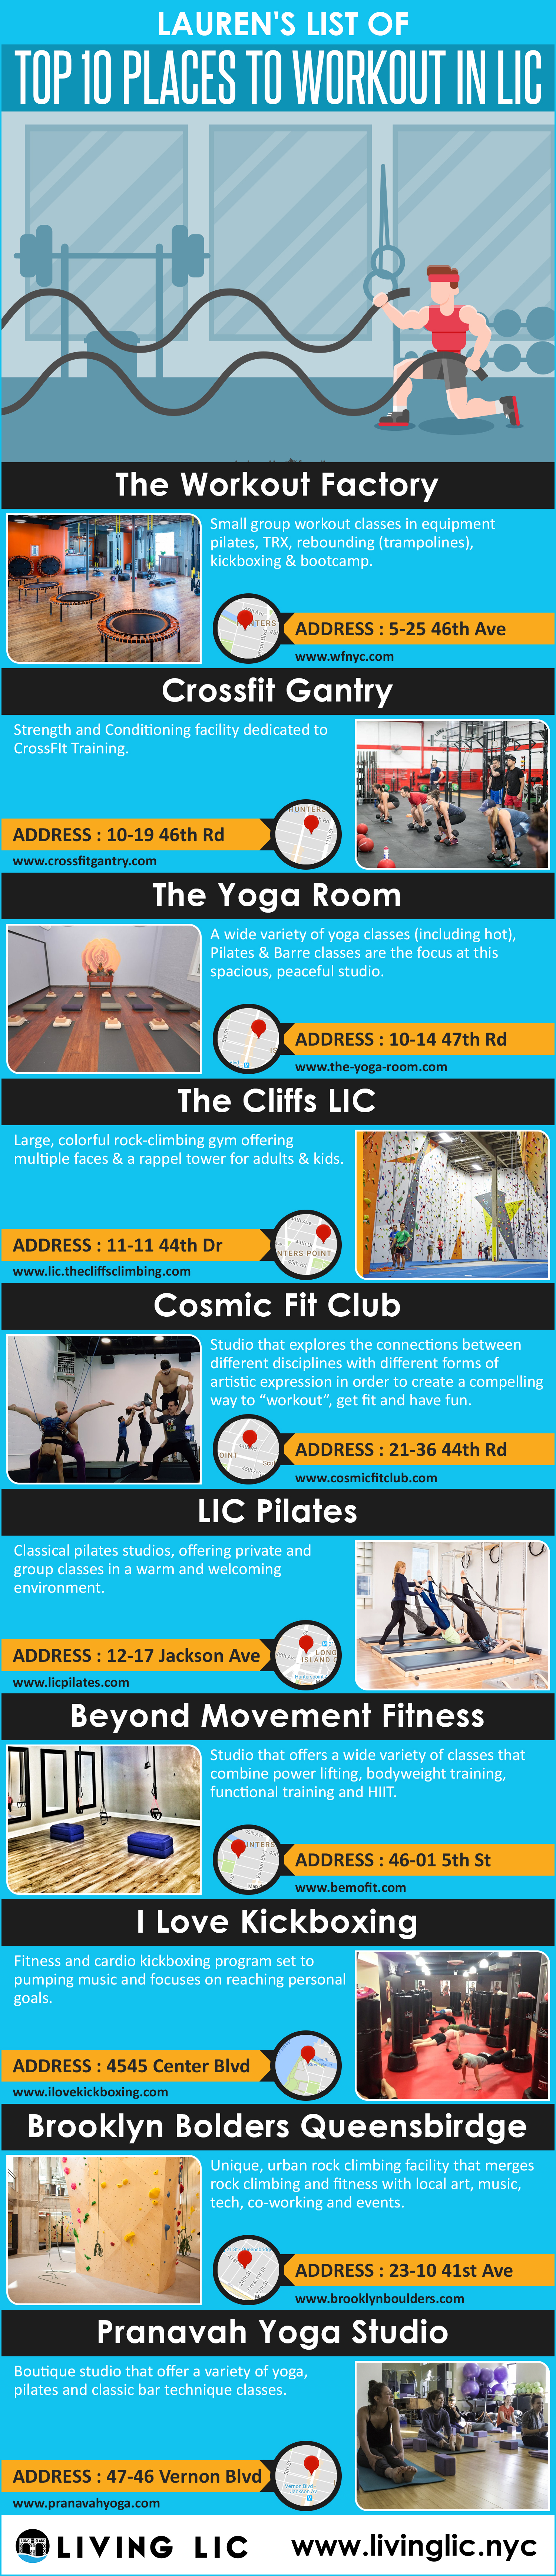 Laurens_List_Of_Top_Ten_Places_To_Workout_In_LIC (1).jpg